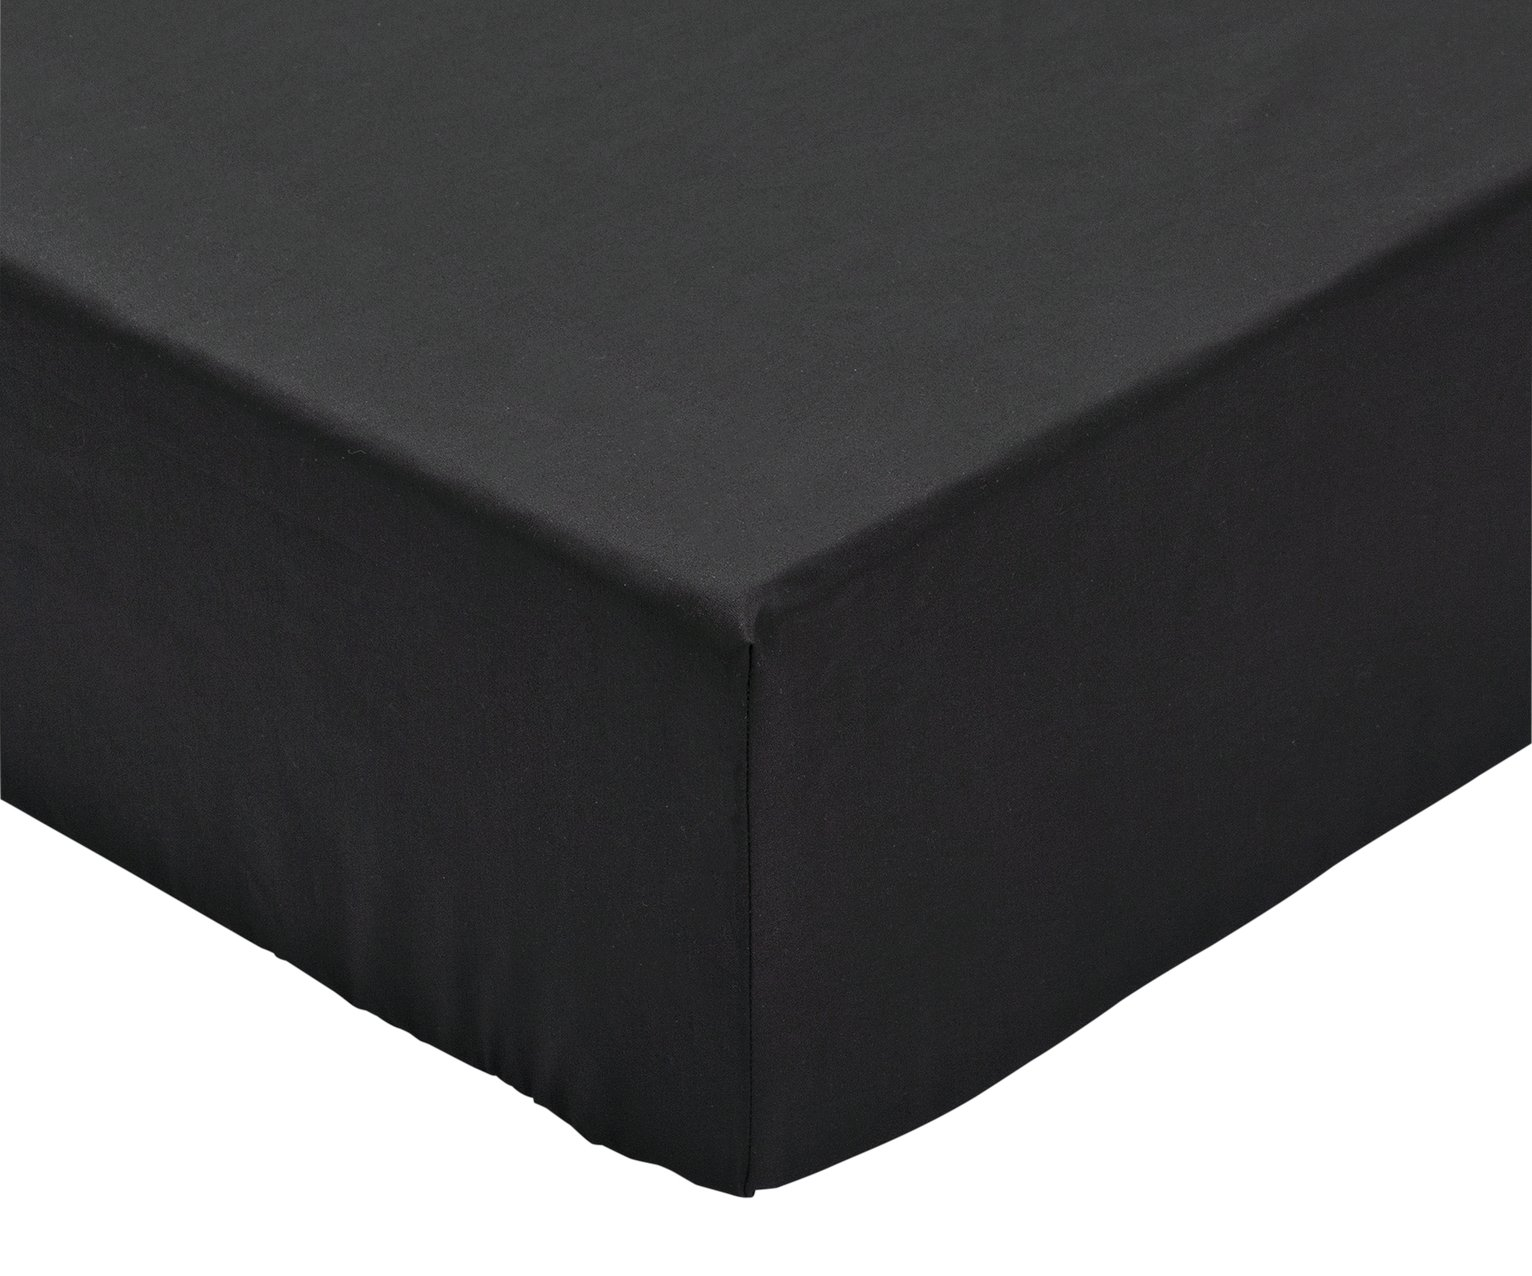 Argos Home Black Cotton Rich Fitted Sheet review